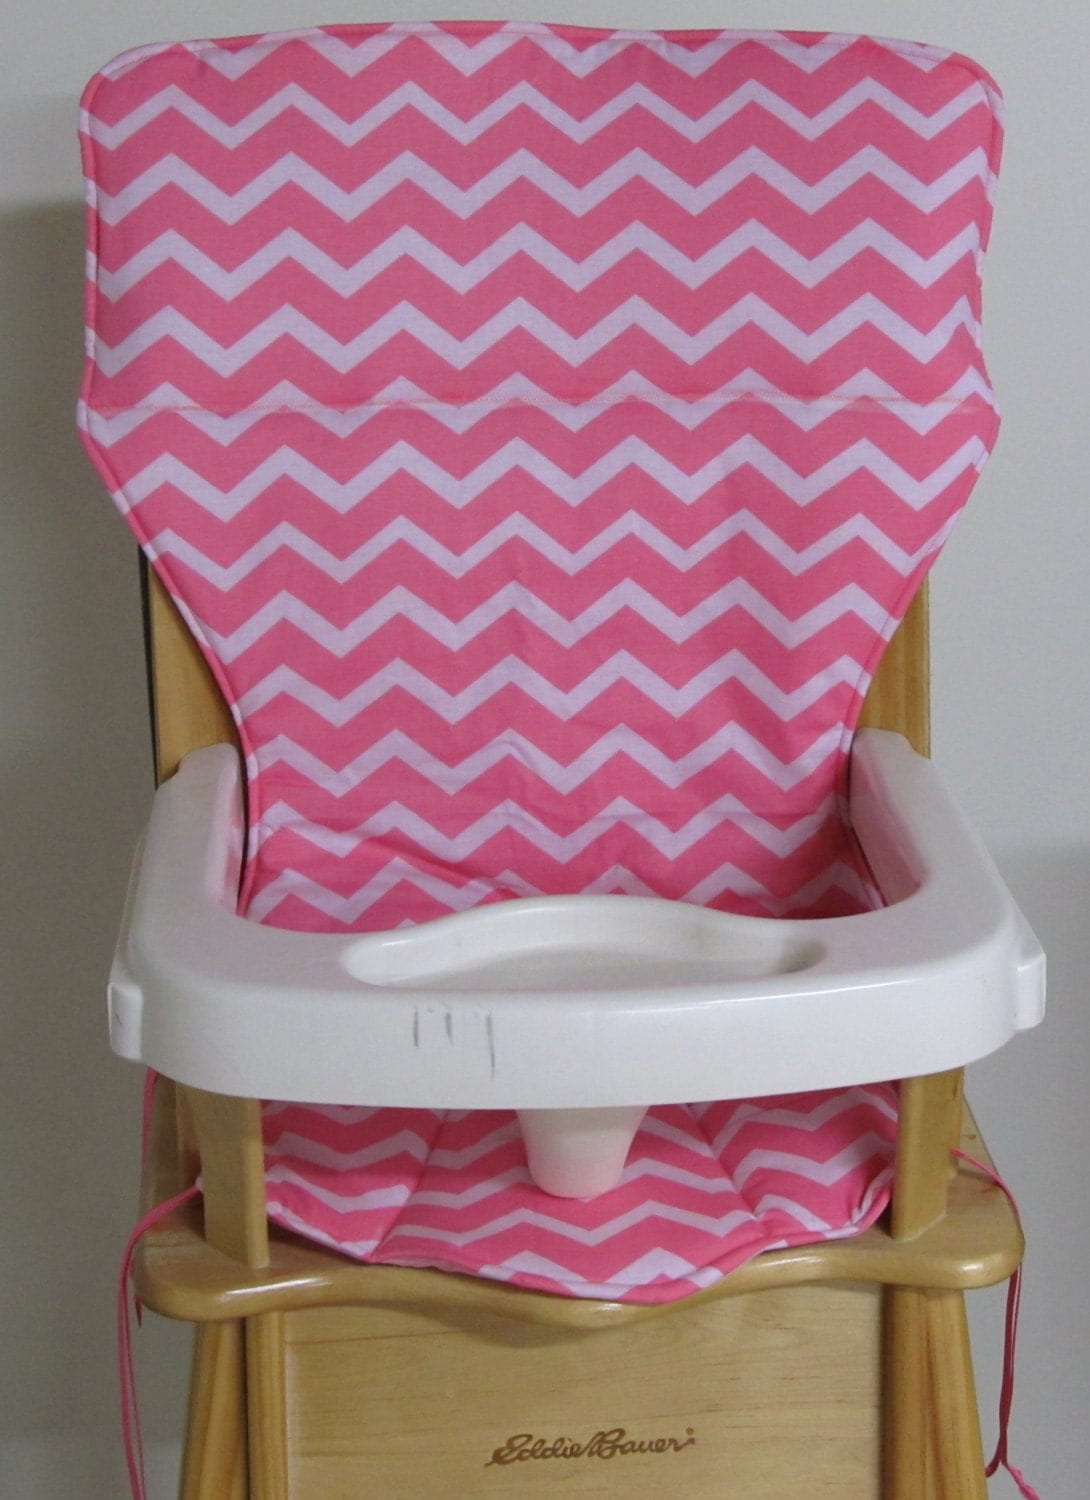 eddie bauer high chairs face down chair pad replacement cover zigzag coral